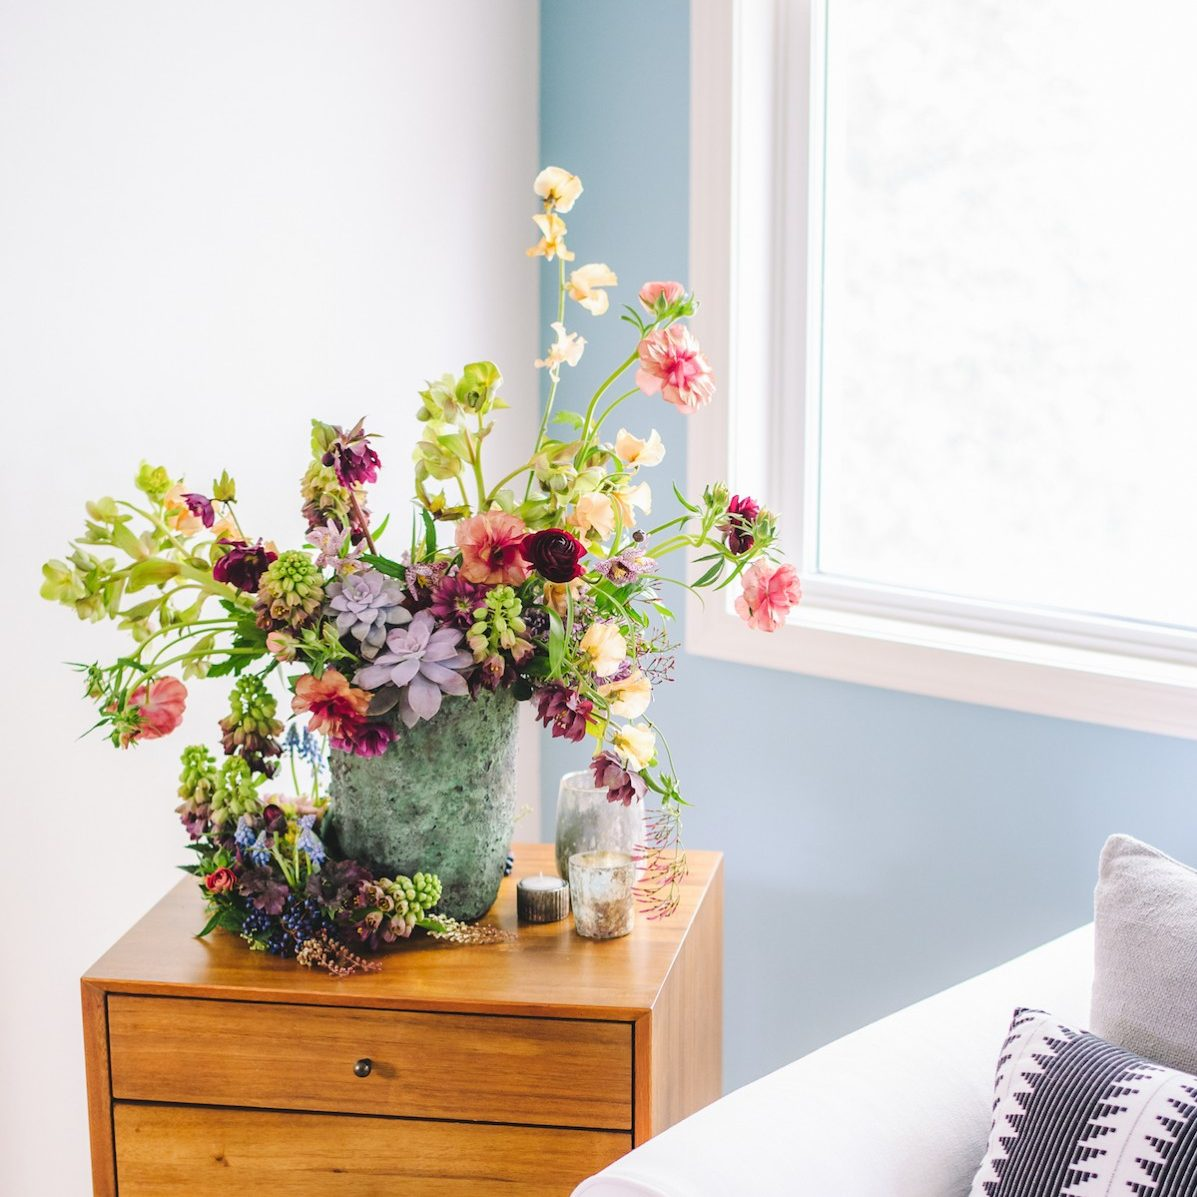 Winter flower arrangements flower magazine home lifestyle looking to spring with susan mcleary izmirmasajfo